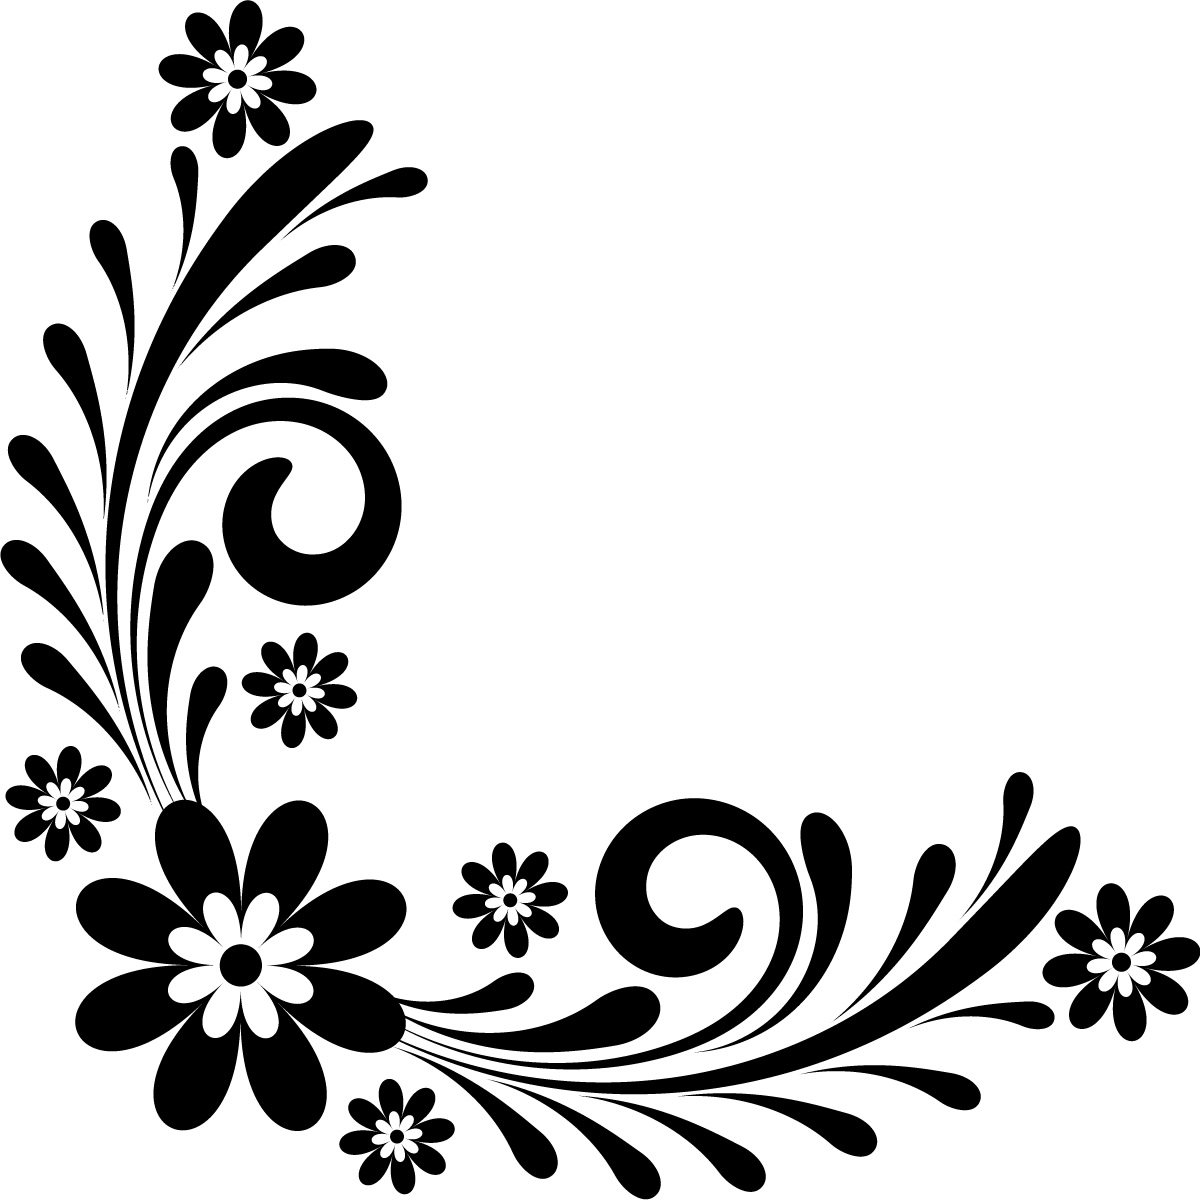 Line Drawing Flower Borders : Page border designs flowers black and white cliparts